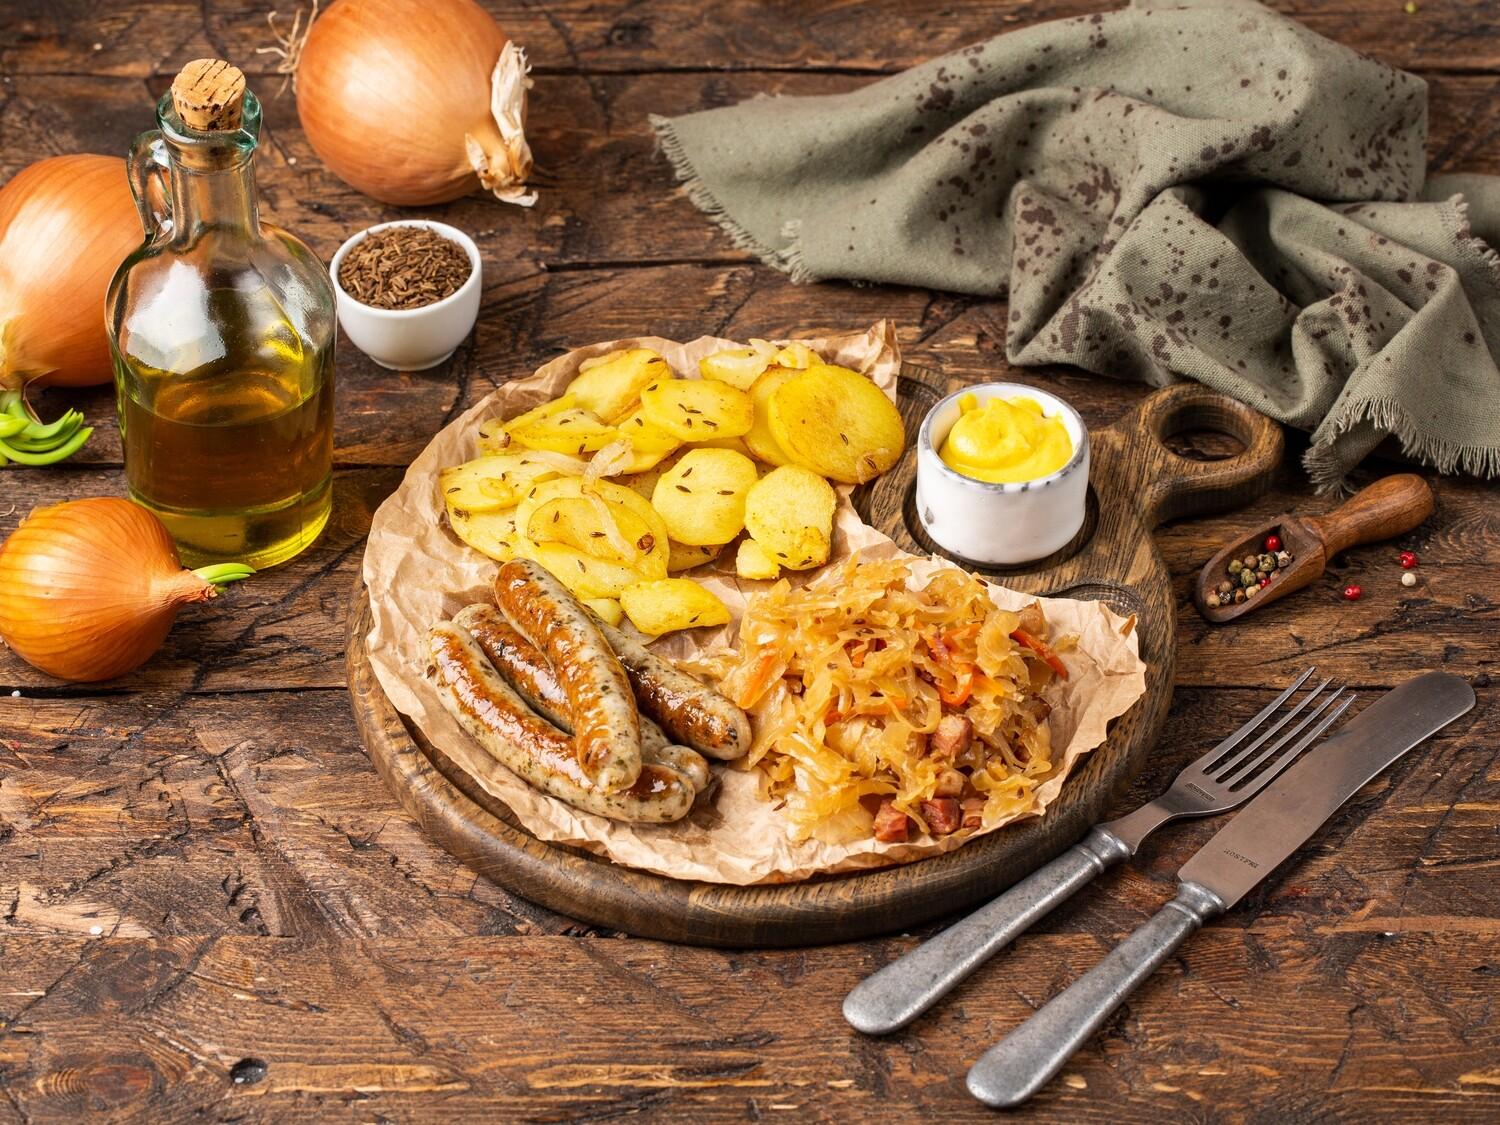 NUREMBERG SAUSAGES WITH SIDE DISHES